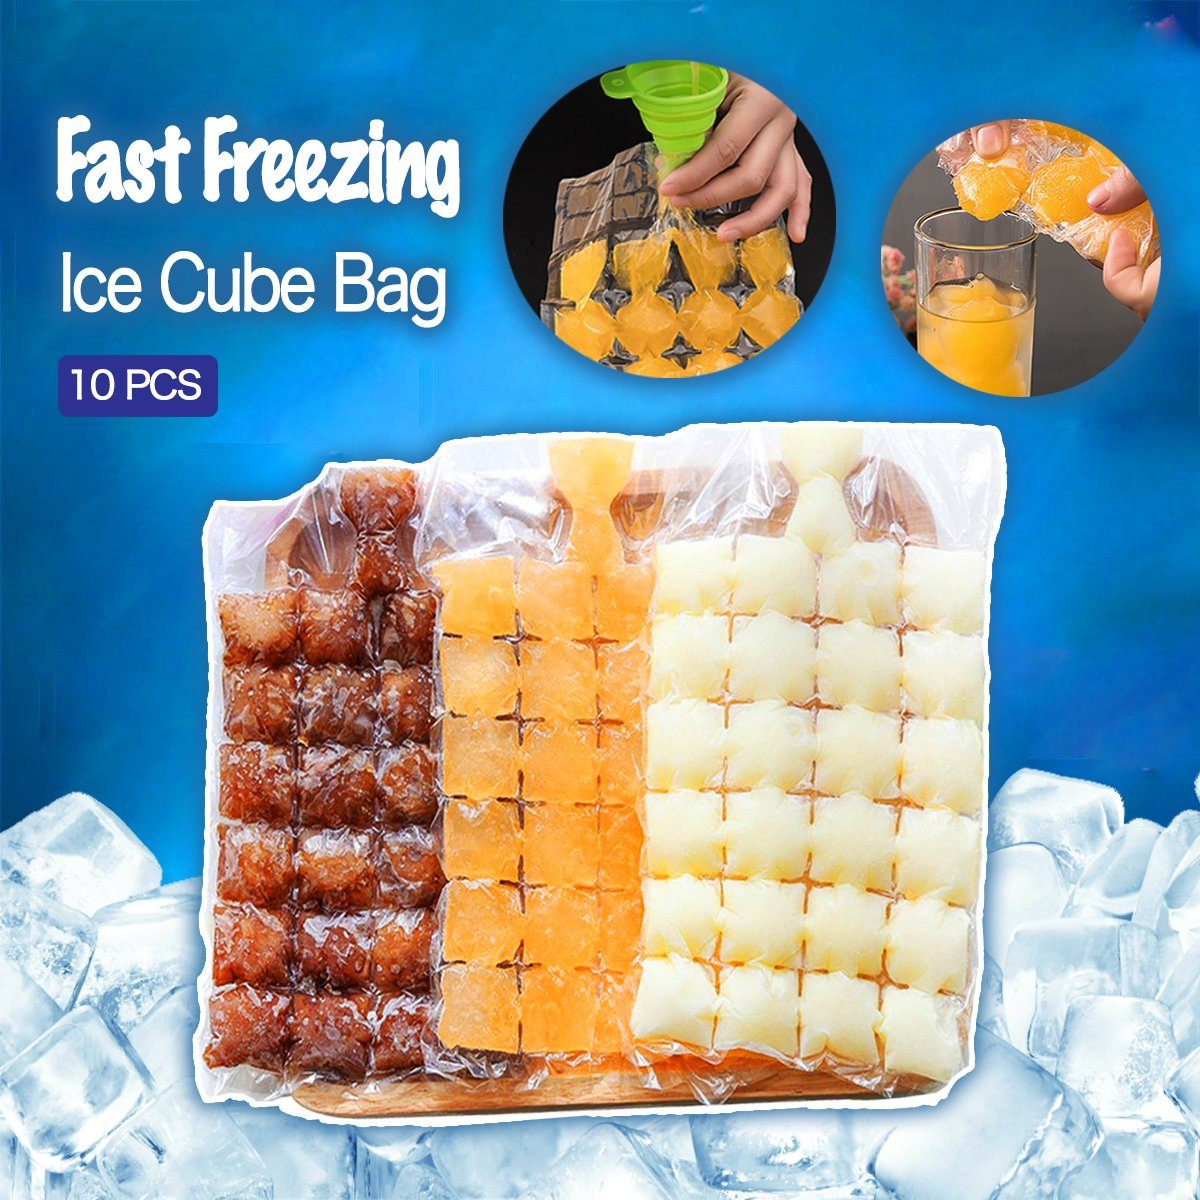 Fast Freezing Ice Cube Bag (10 Pcs)